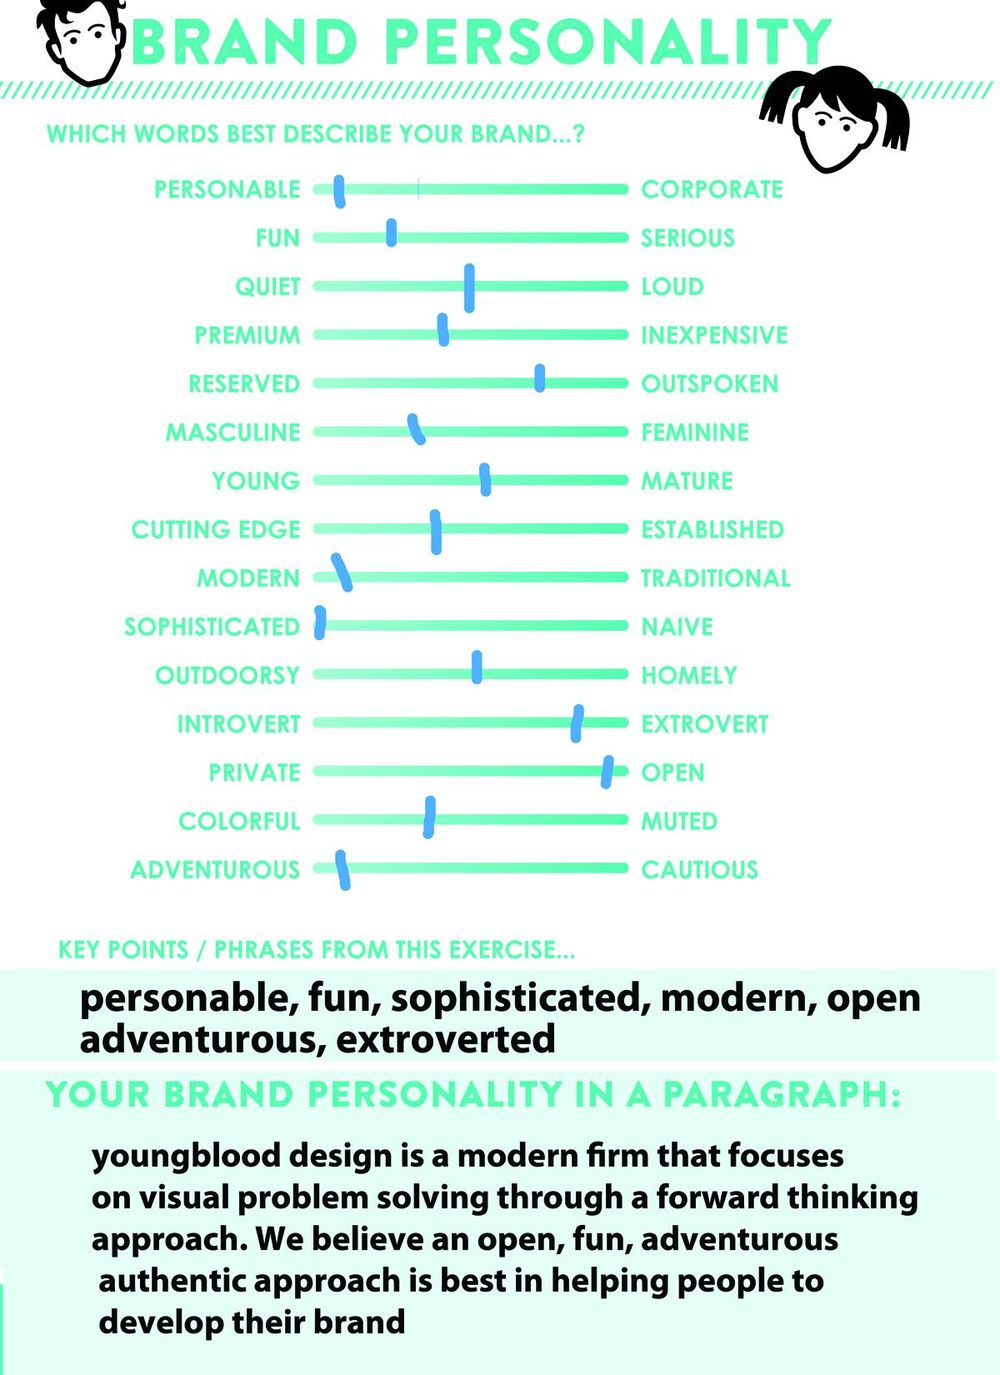 youngblood design - image 3 - student project